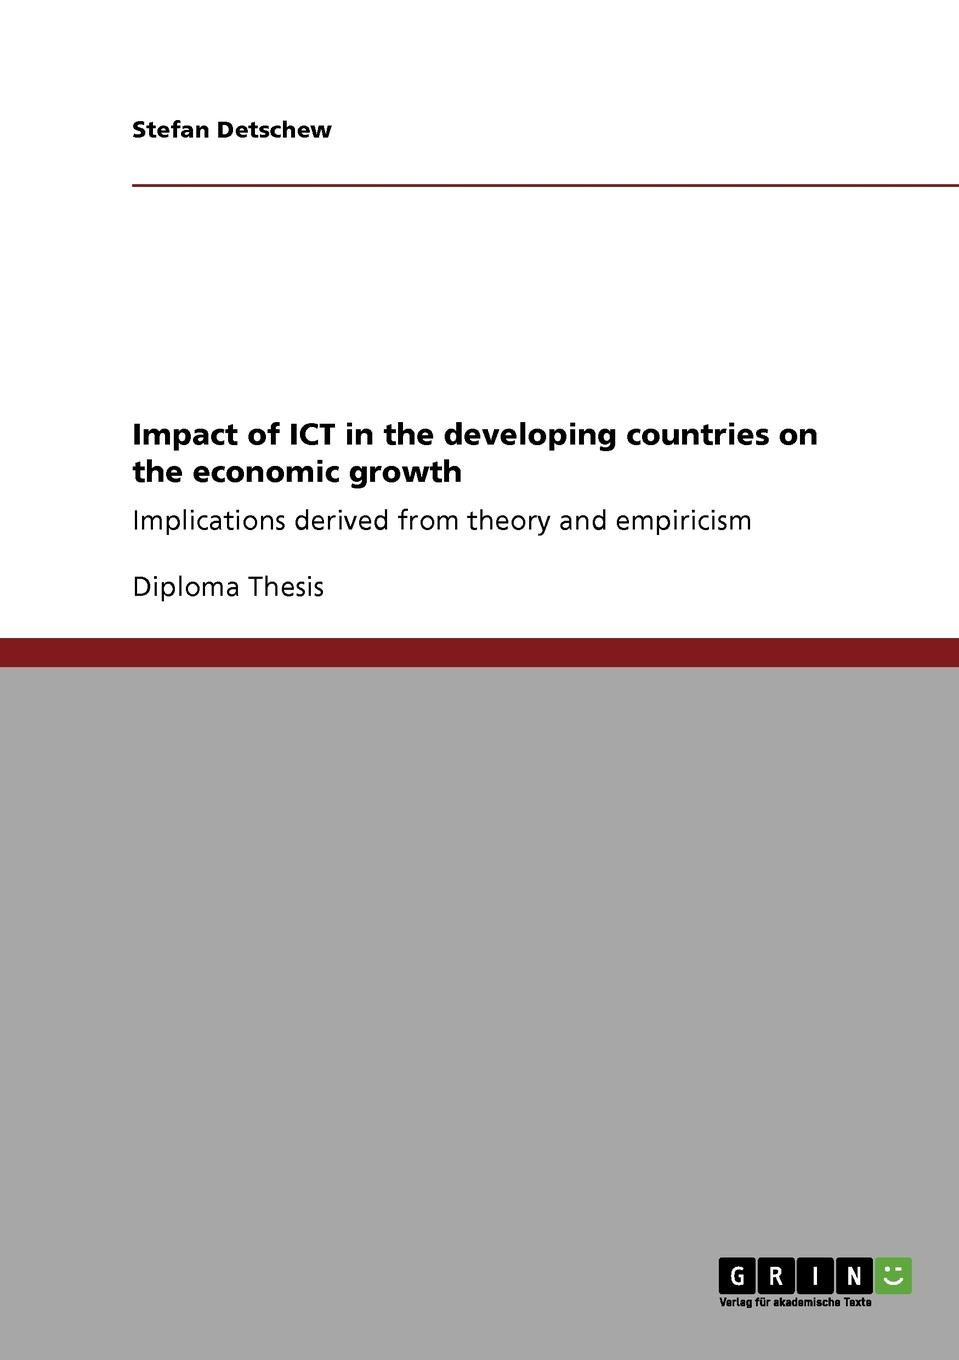 Stefan Detschew Impact of ICT in the developing countries on the economic growth mary wanjiru ng ang a zachary kosgei joyce kanyiri ict adoption in schools